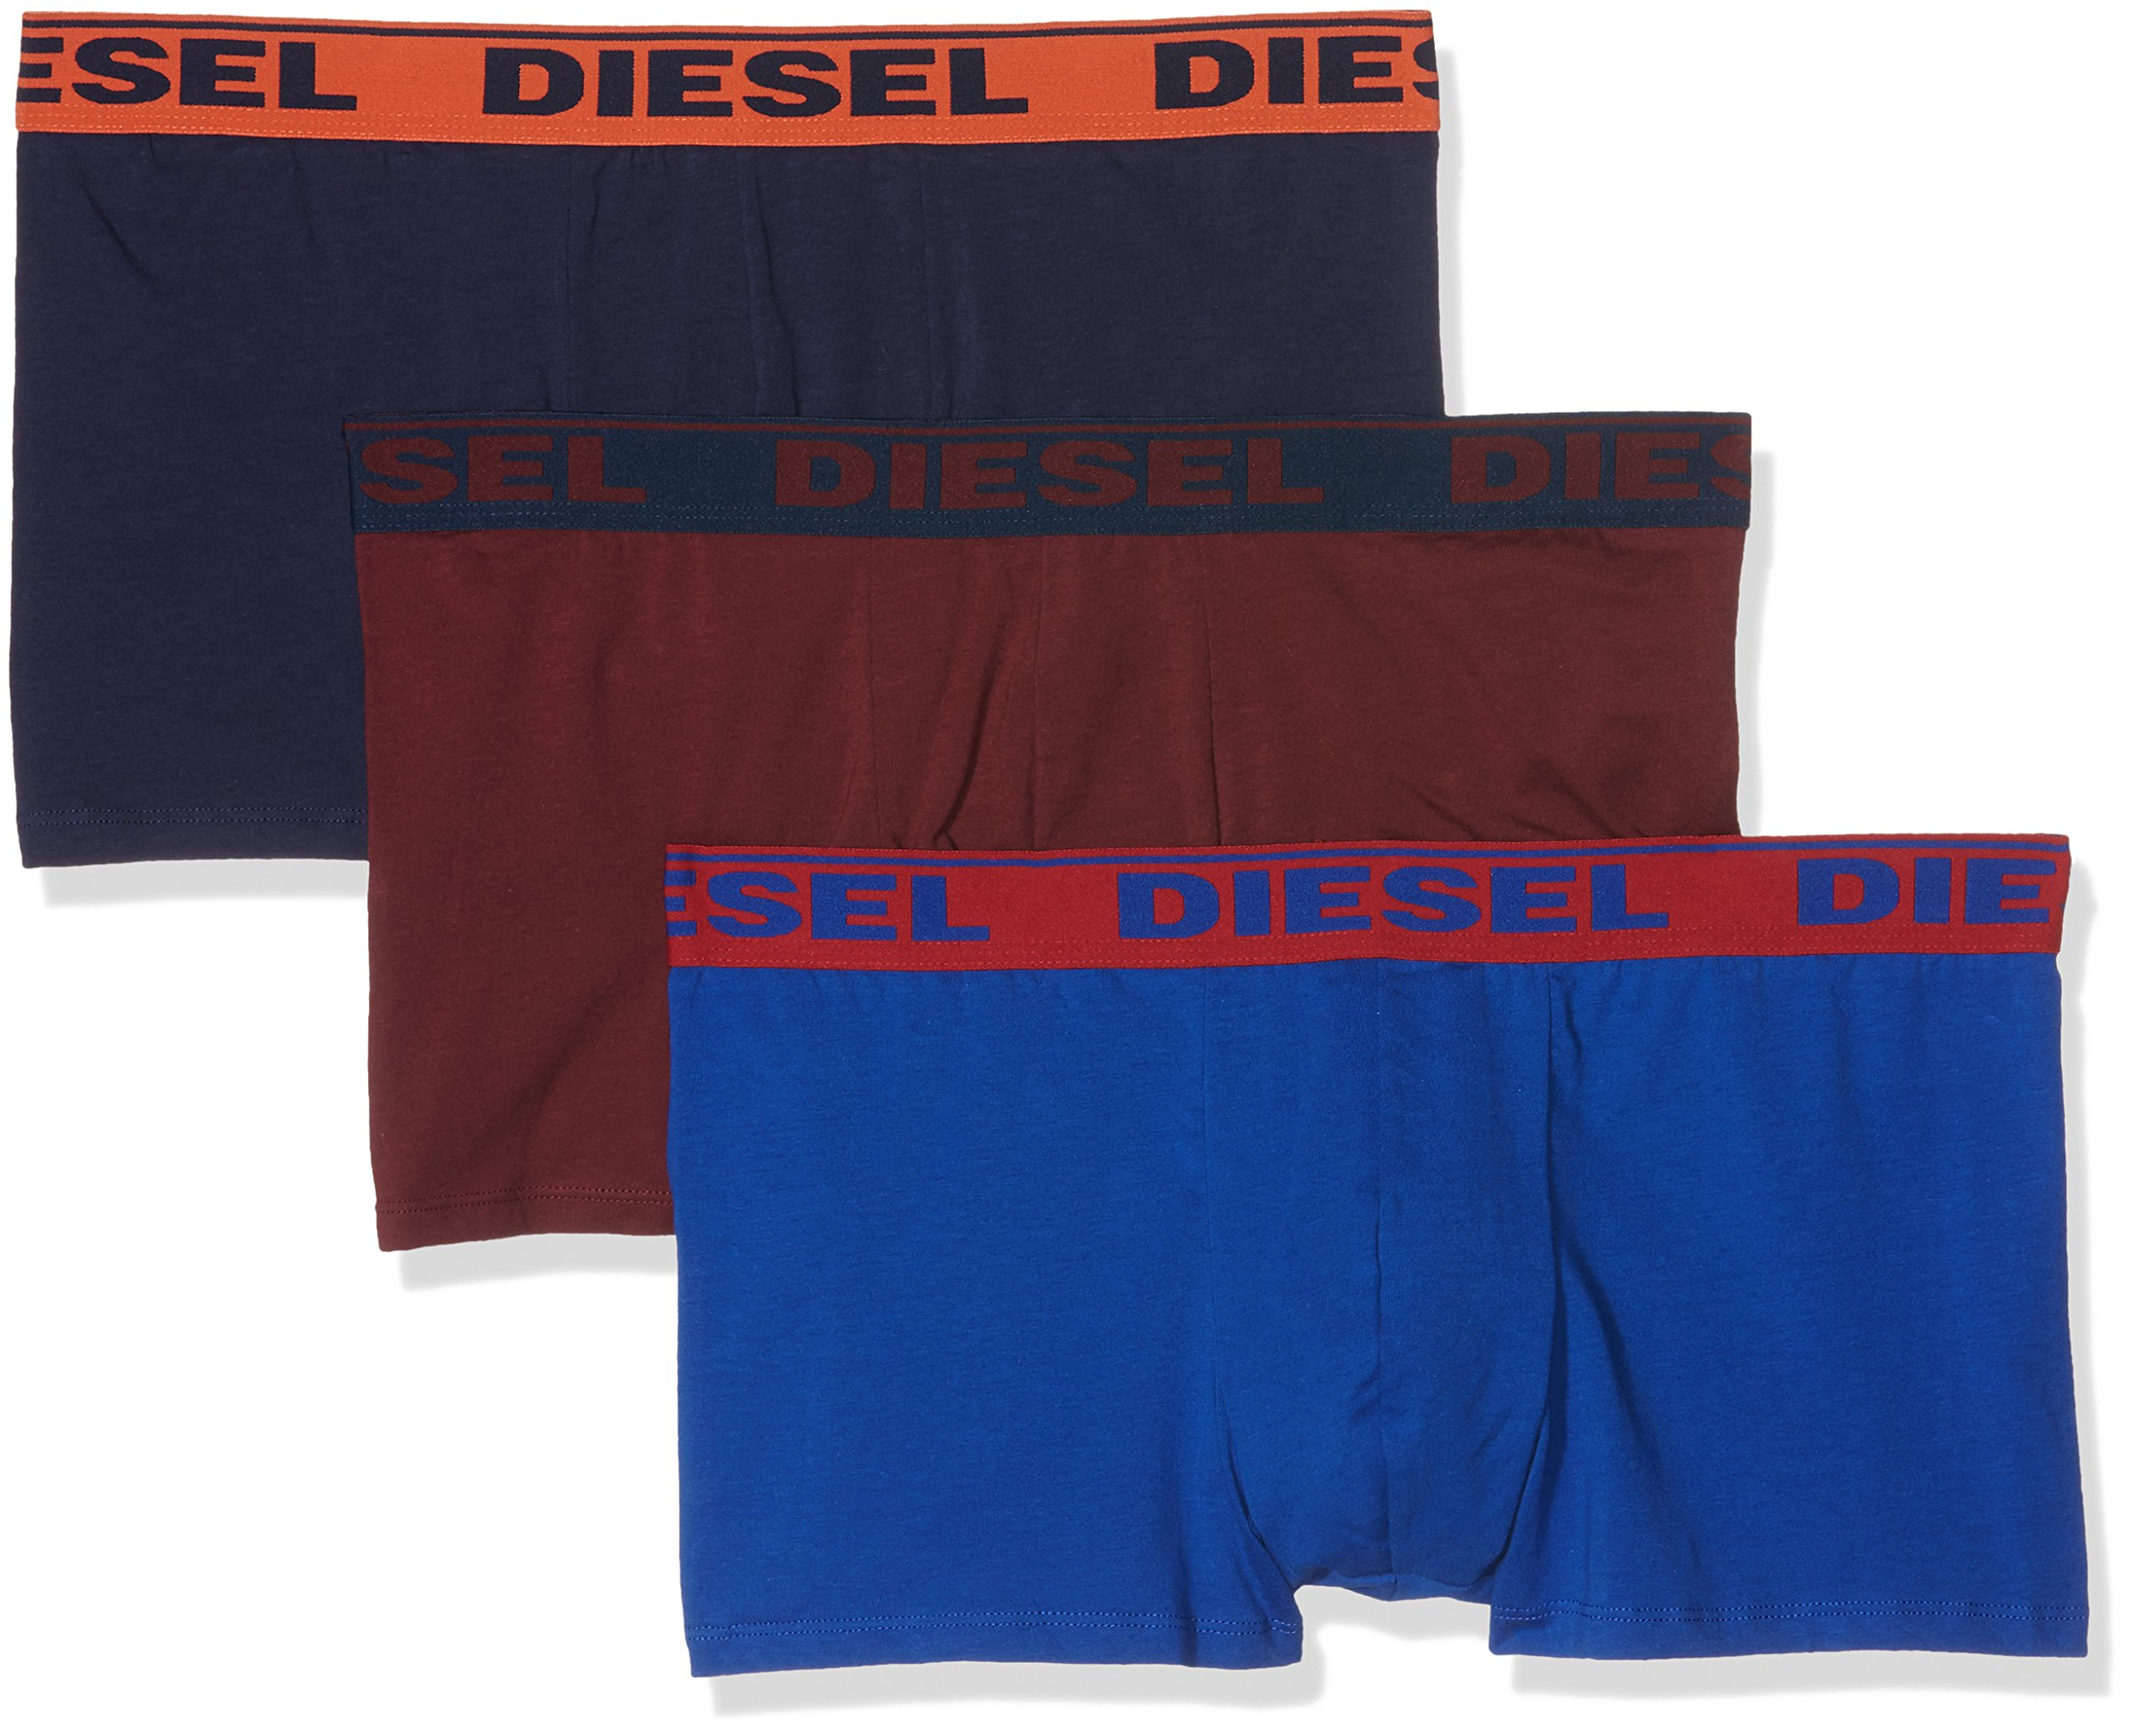 Diesel Men's 3-Pack Shawn Stretch Boxer Trunk, Royal Blue/Burgundy/Navy, X-Large